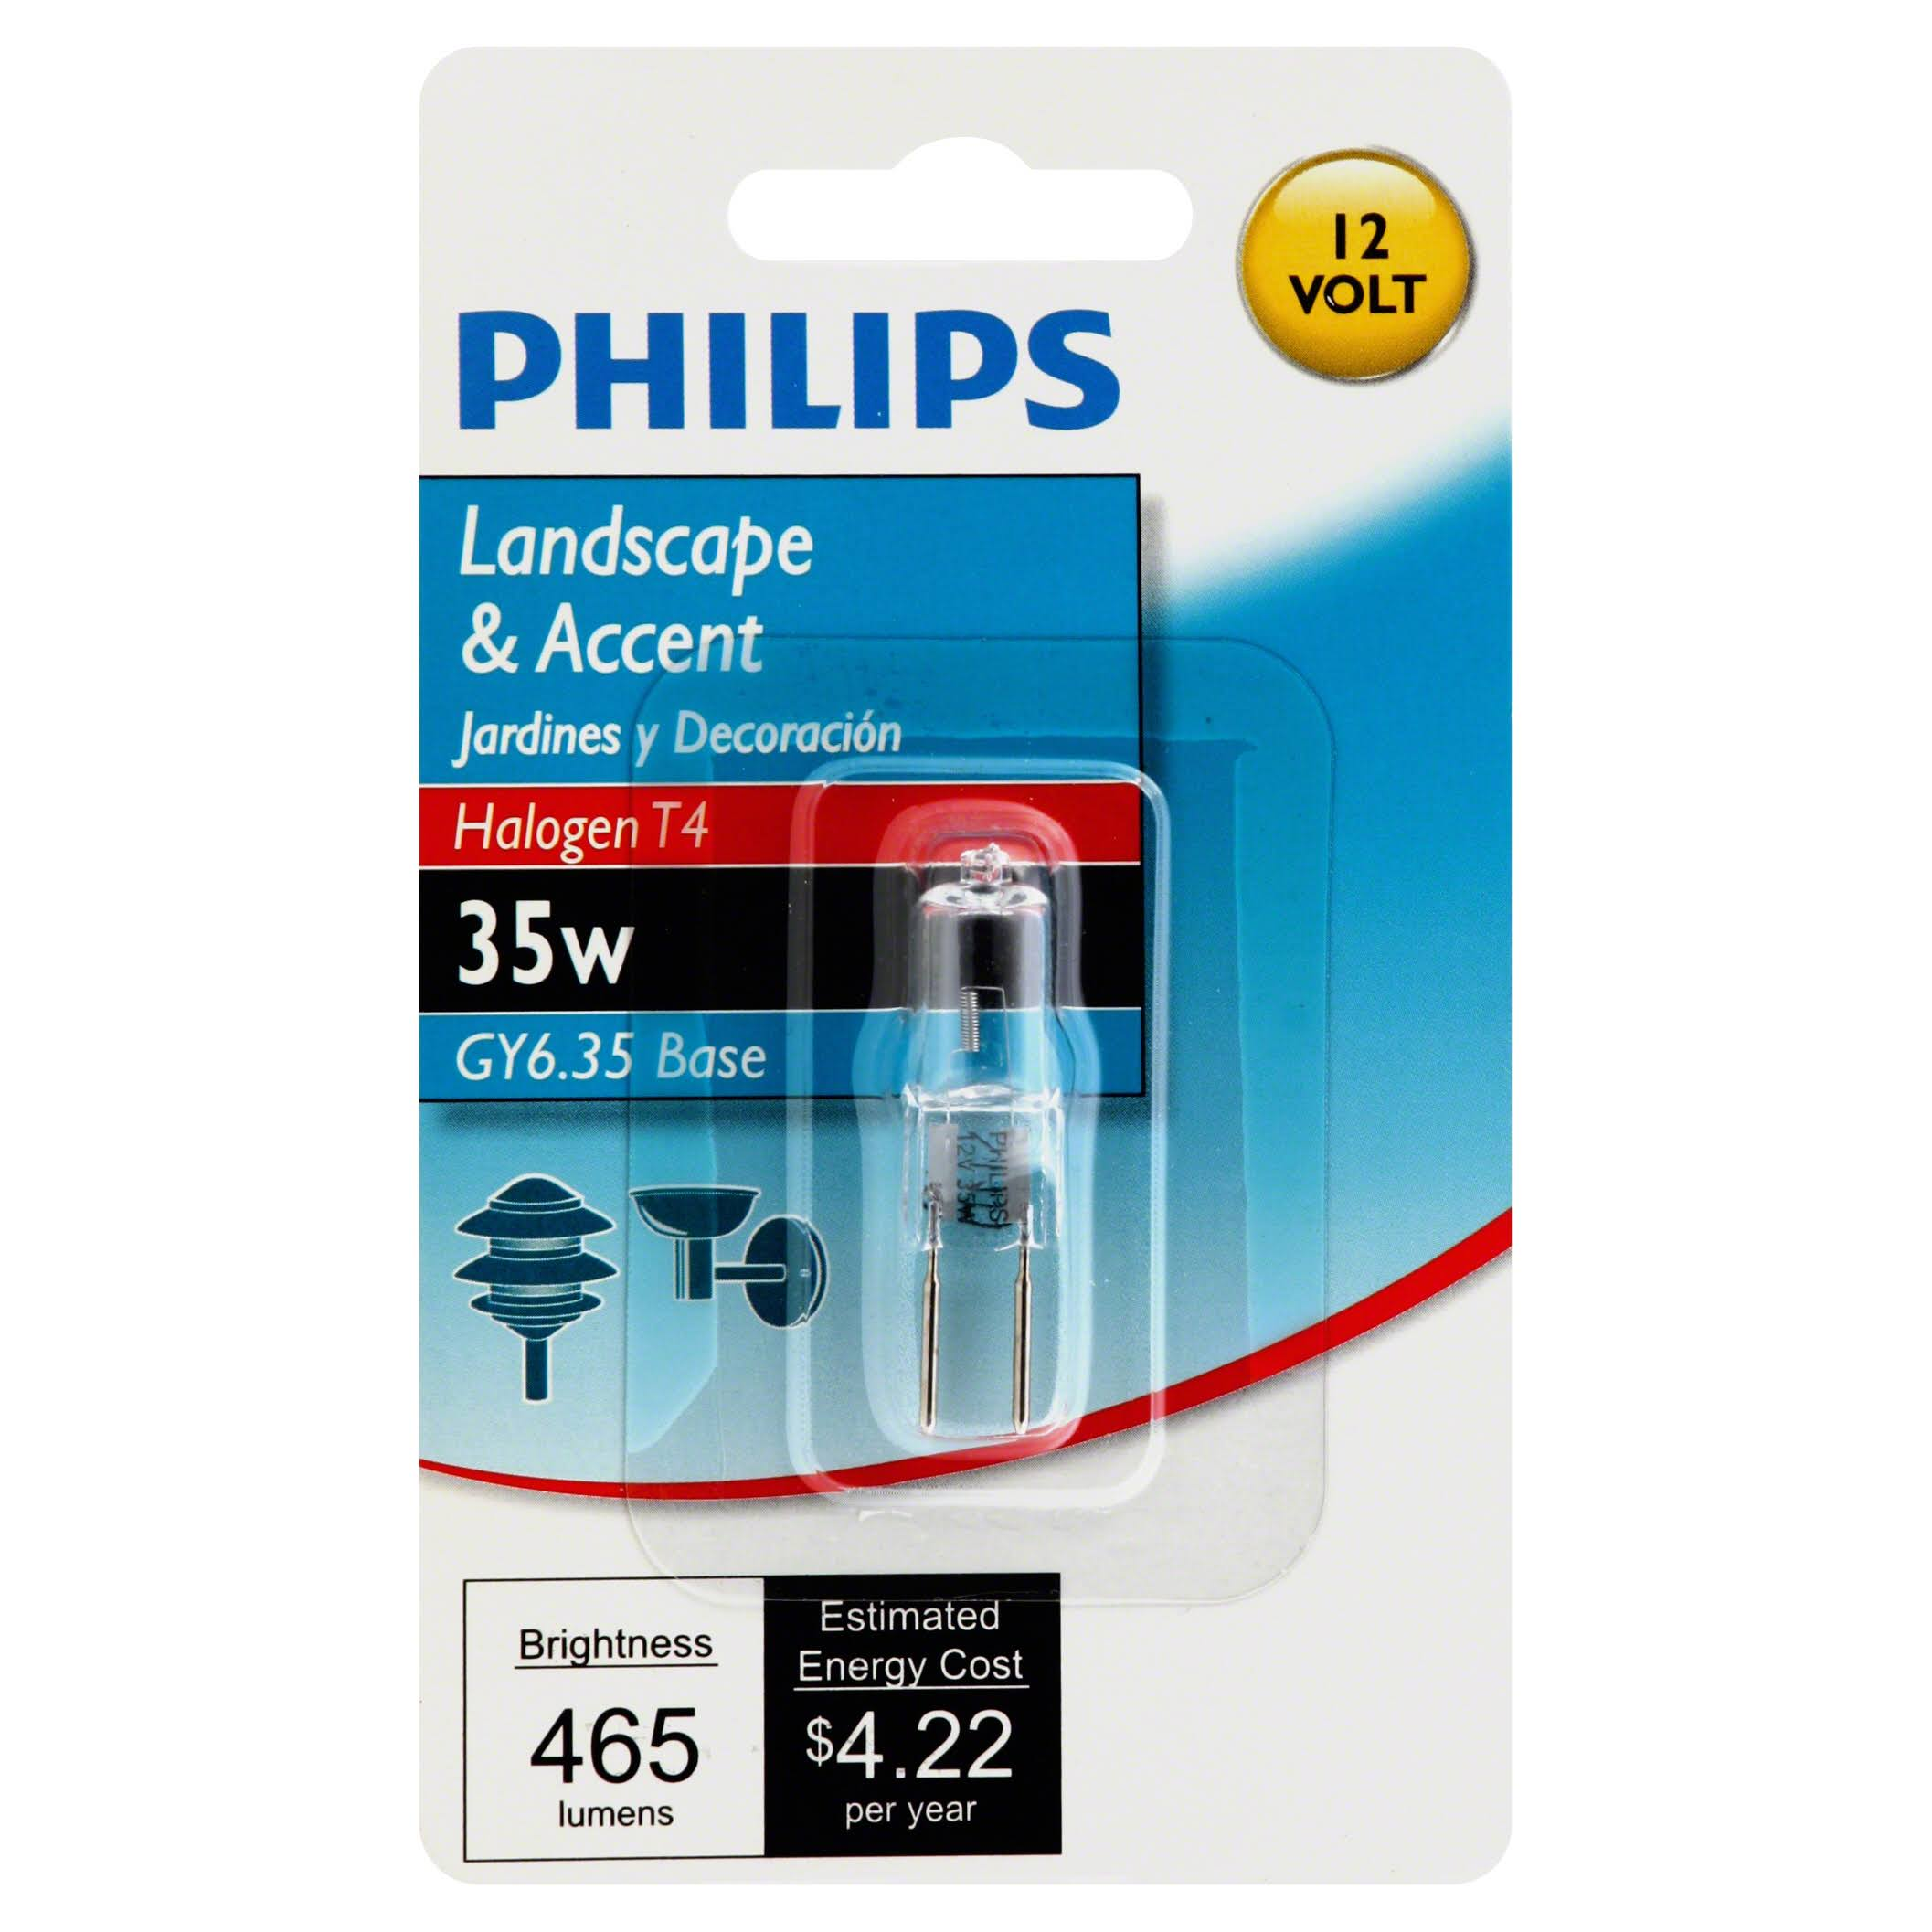 Philips Landscape and Accent Halogen Light Bulb - 35W, Dimmable